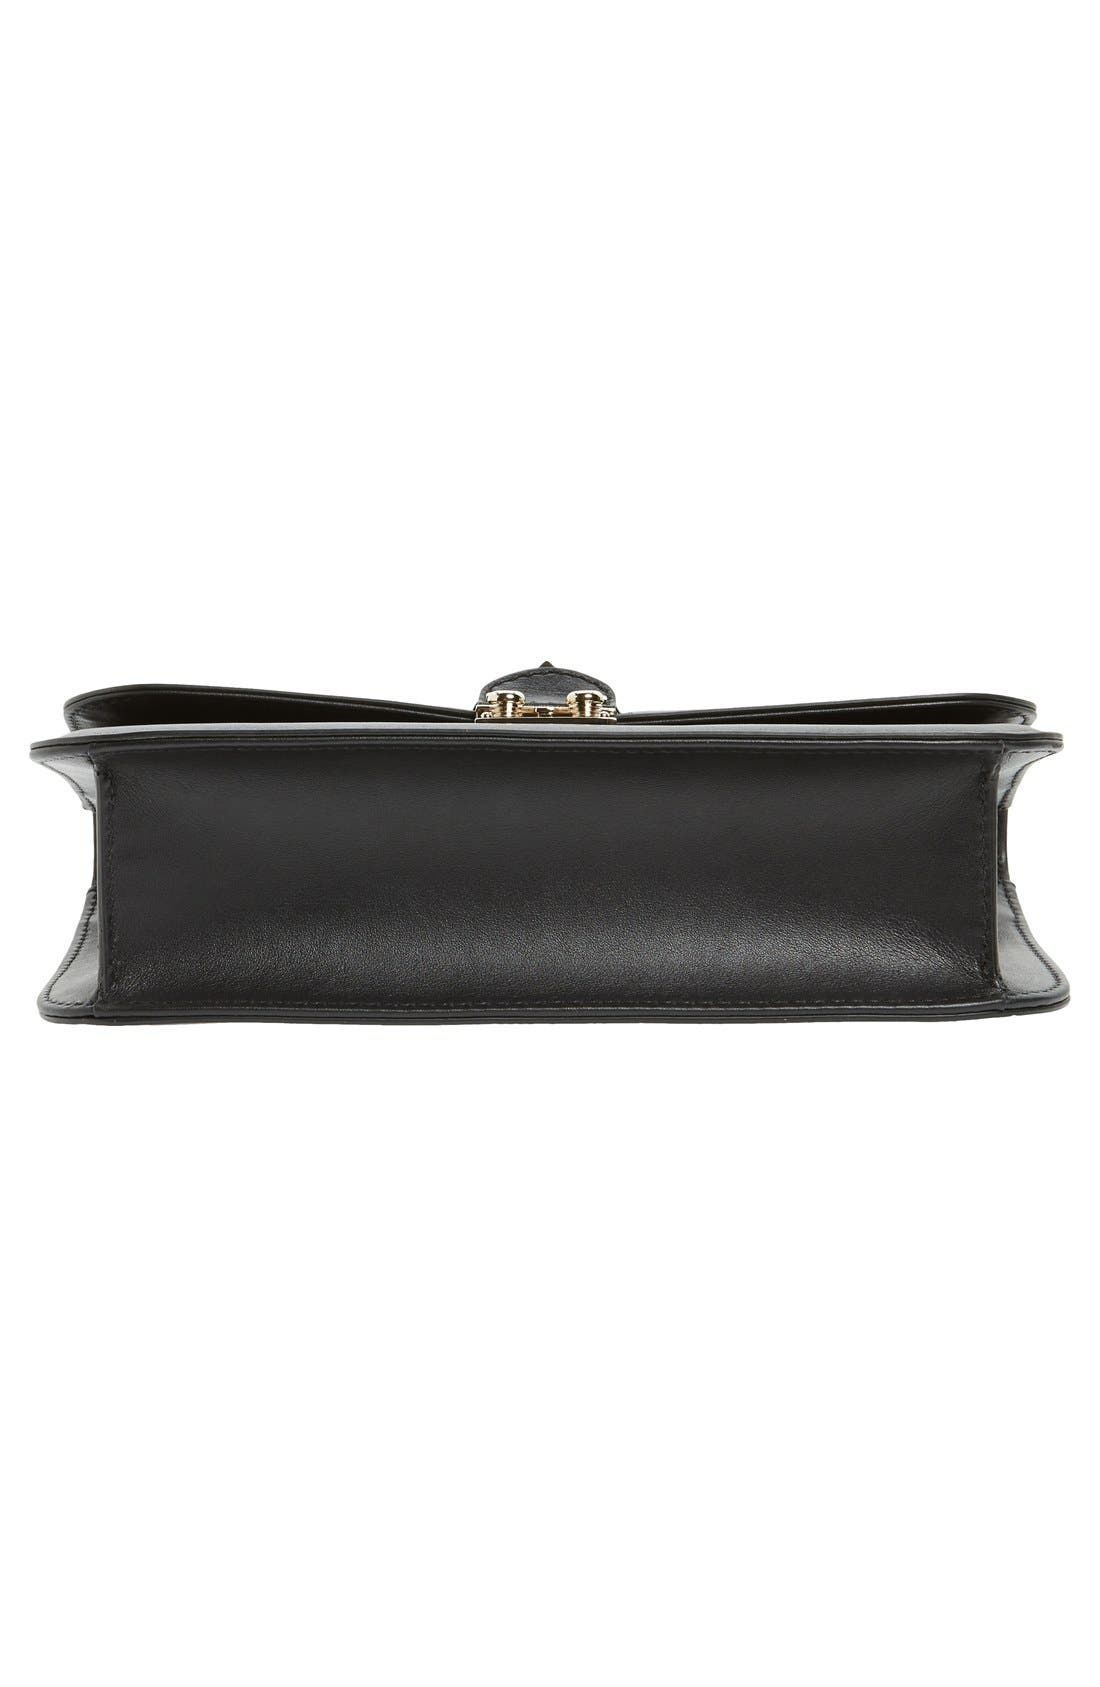 'Medium Lock' Shoulder Bag,                             Alternate thumbnail 6, color,                             NERO